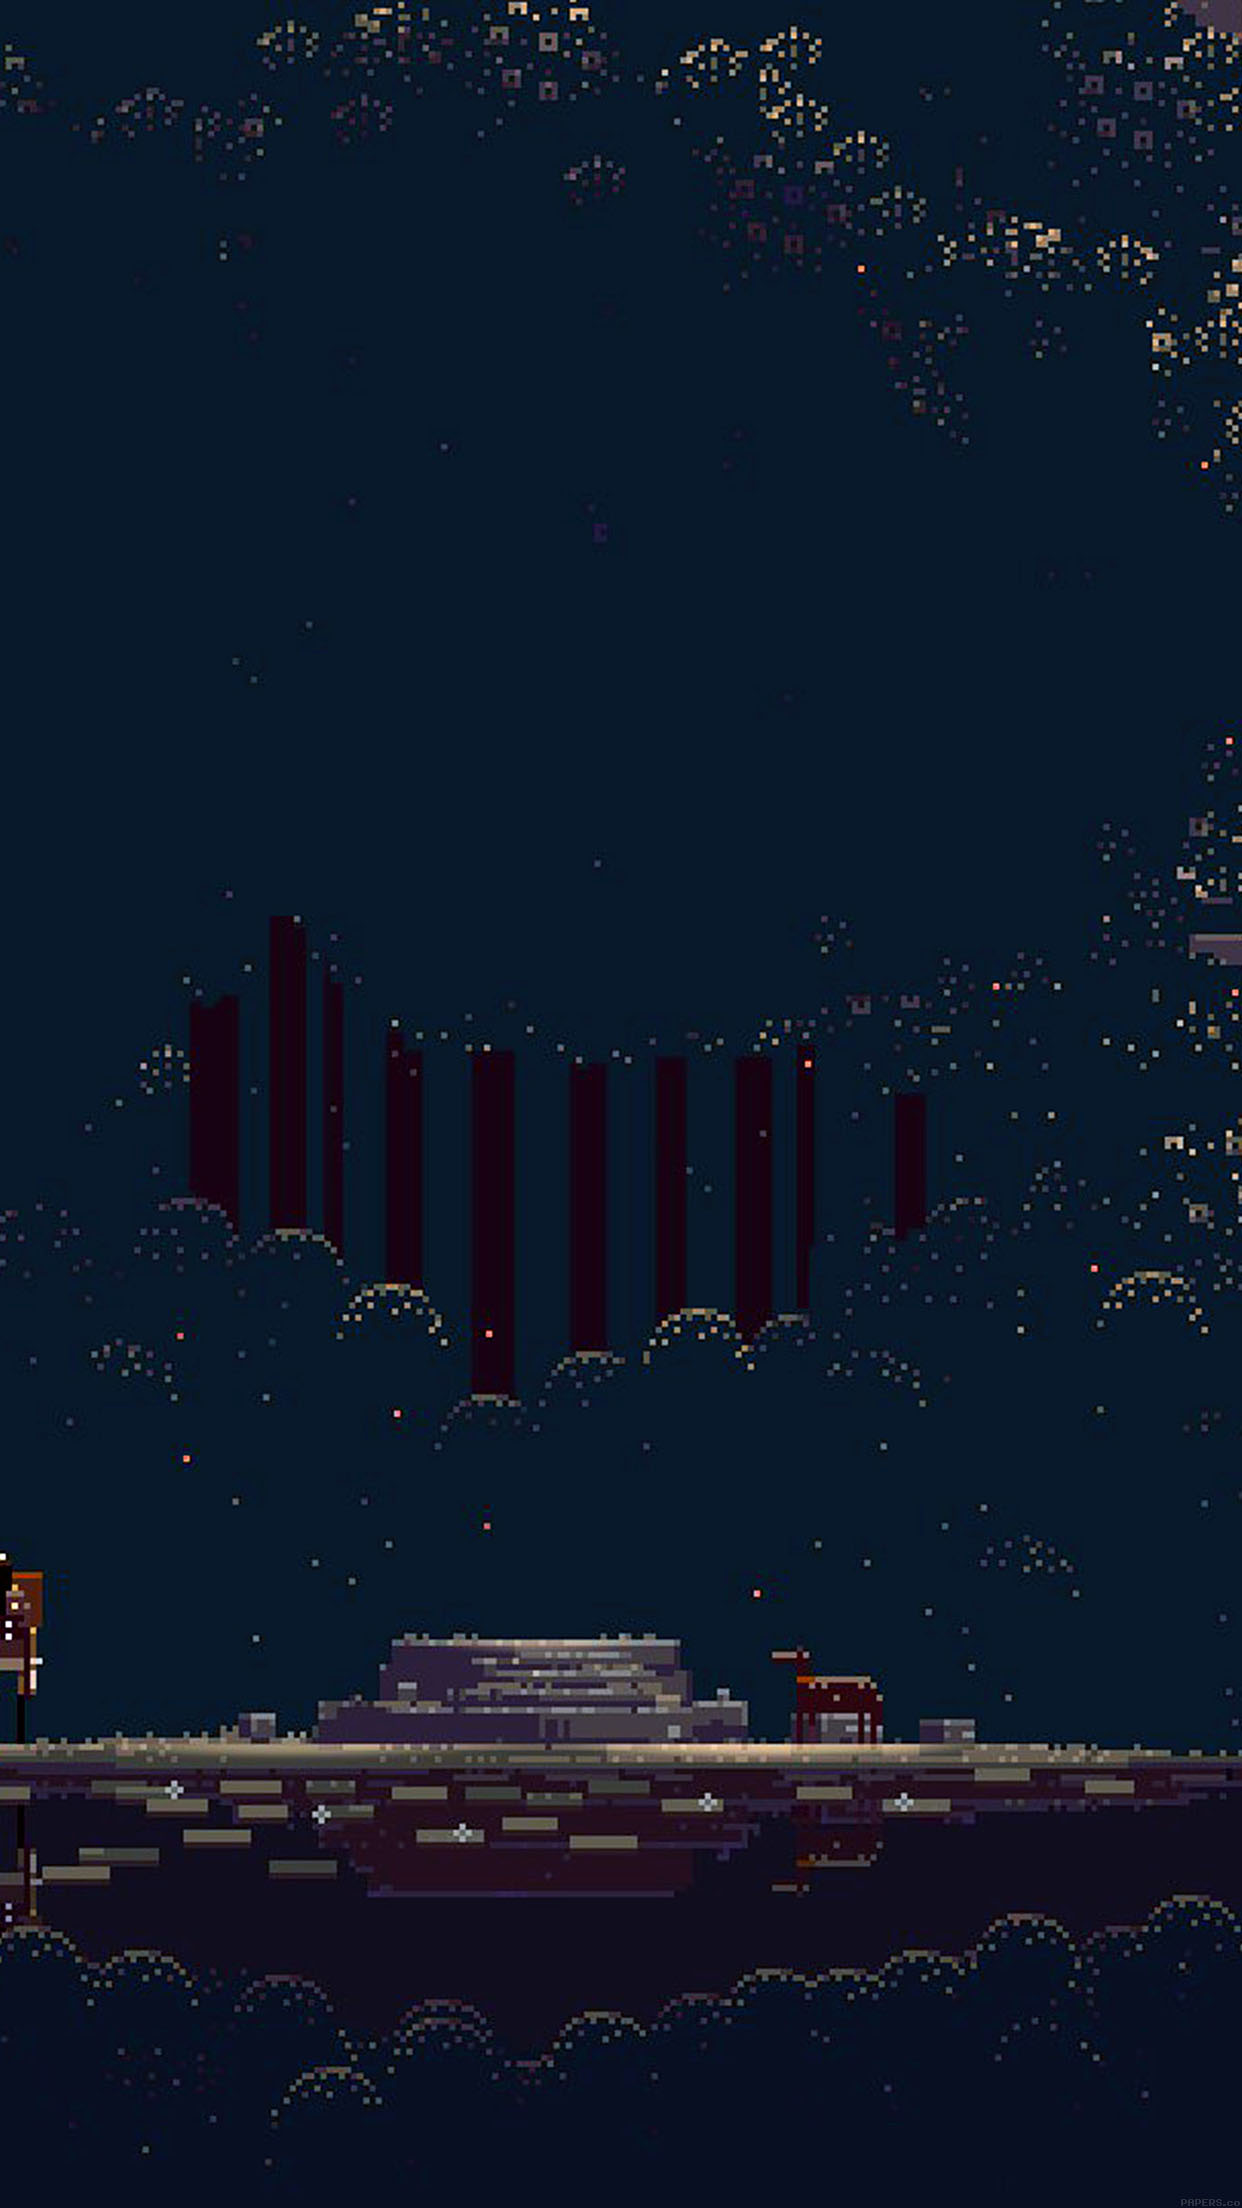 8 Bit Wallpaper Iphone